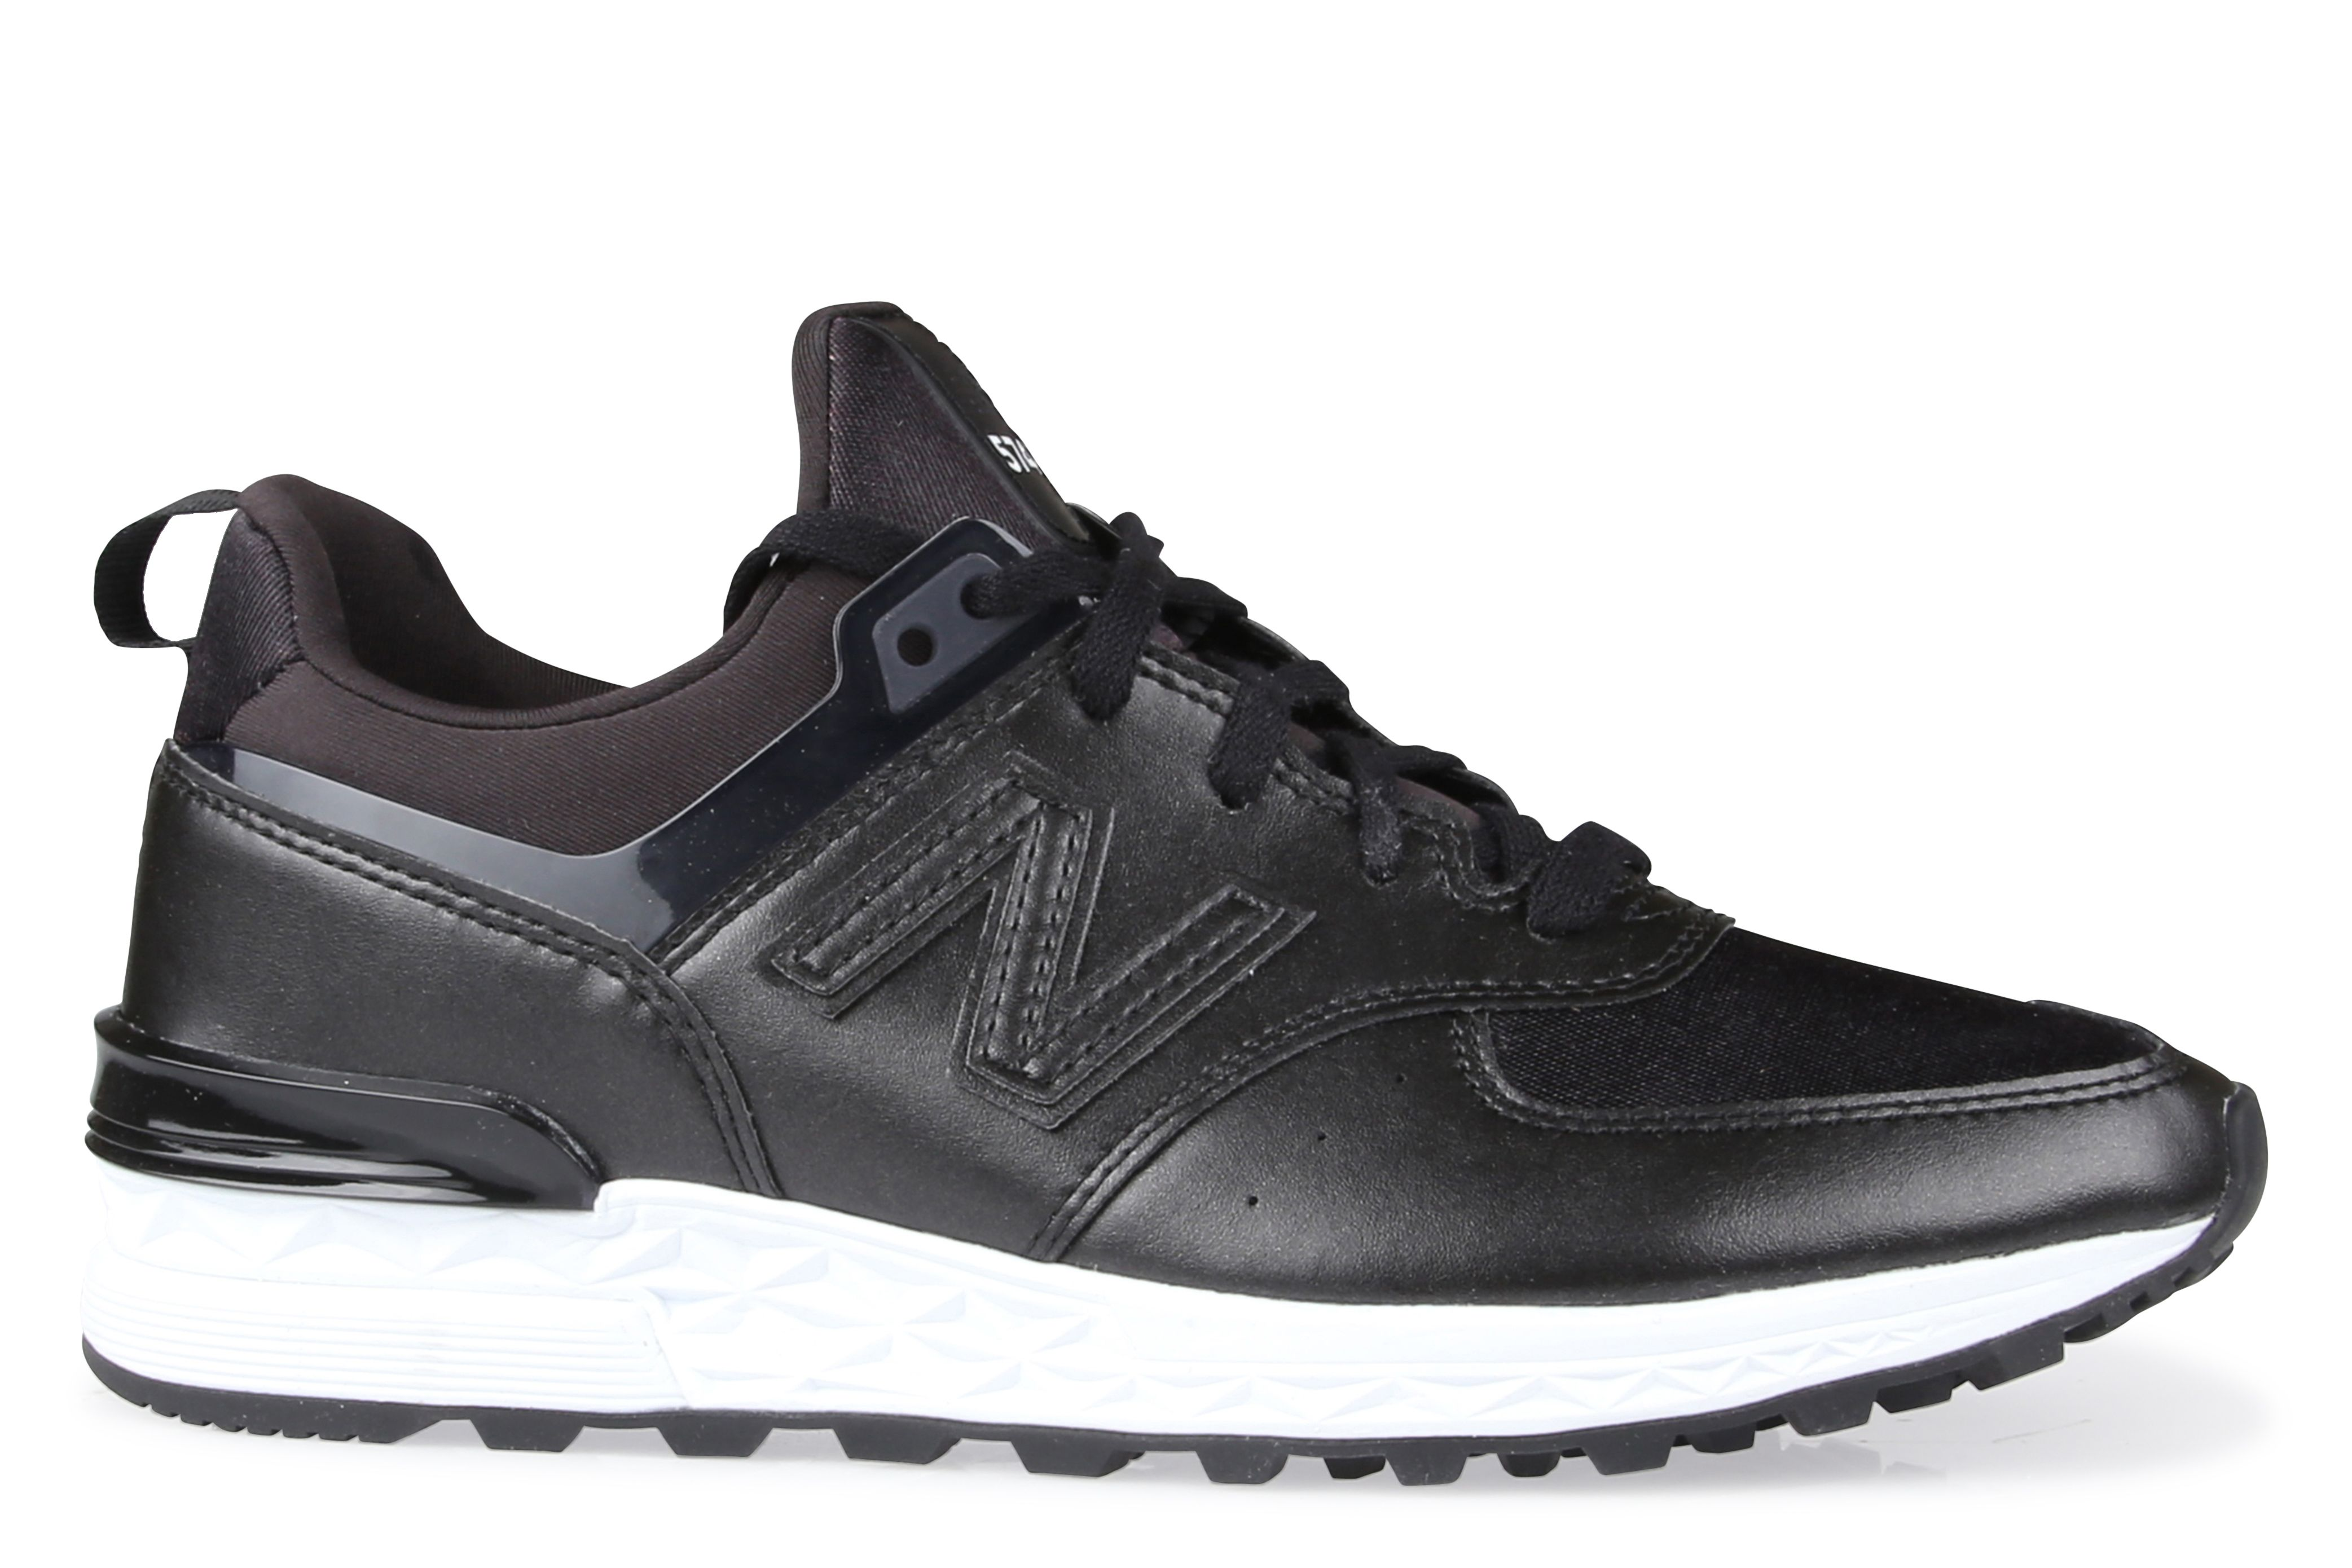 new balance 574 all black womens nz